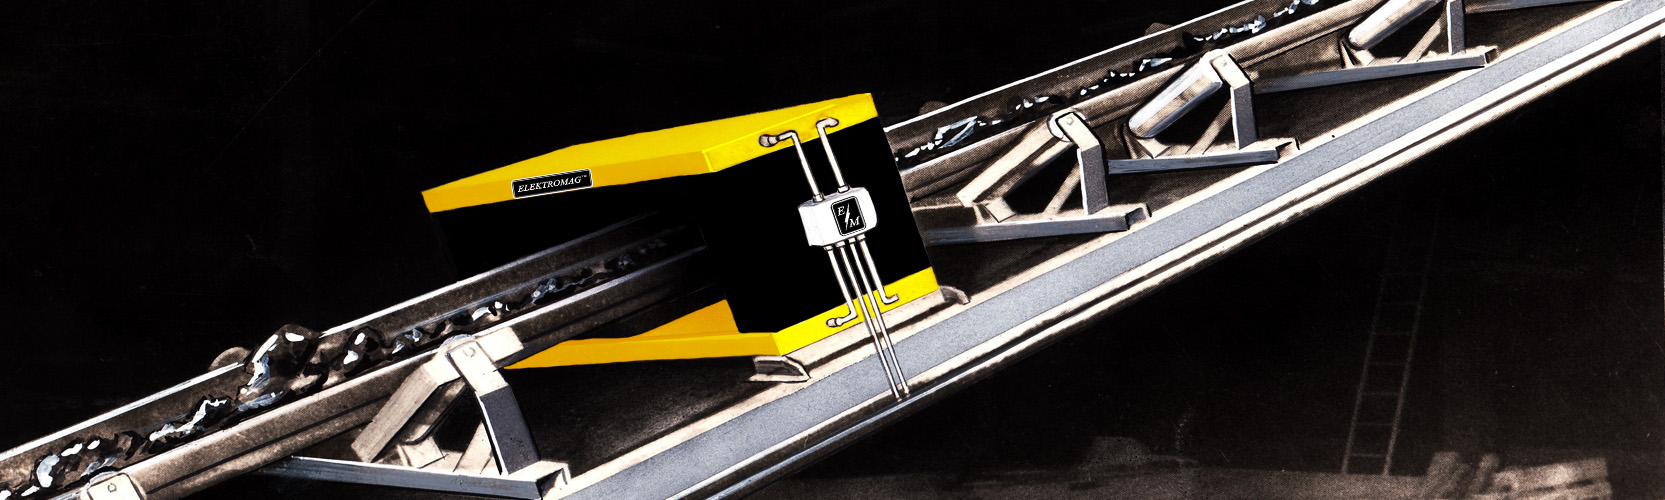 Conveyor_Belt_Metal_Detector_HDbanner